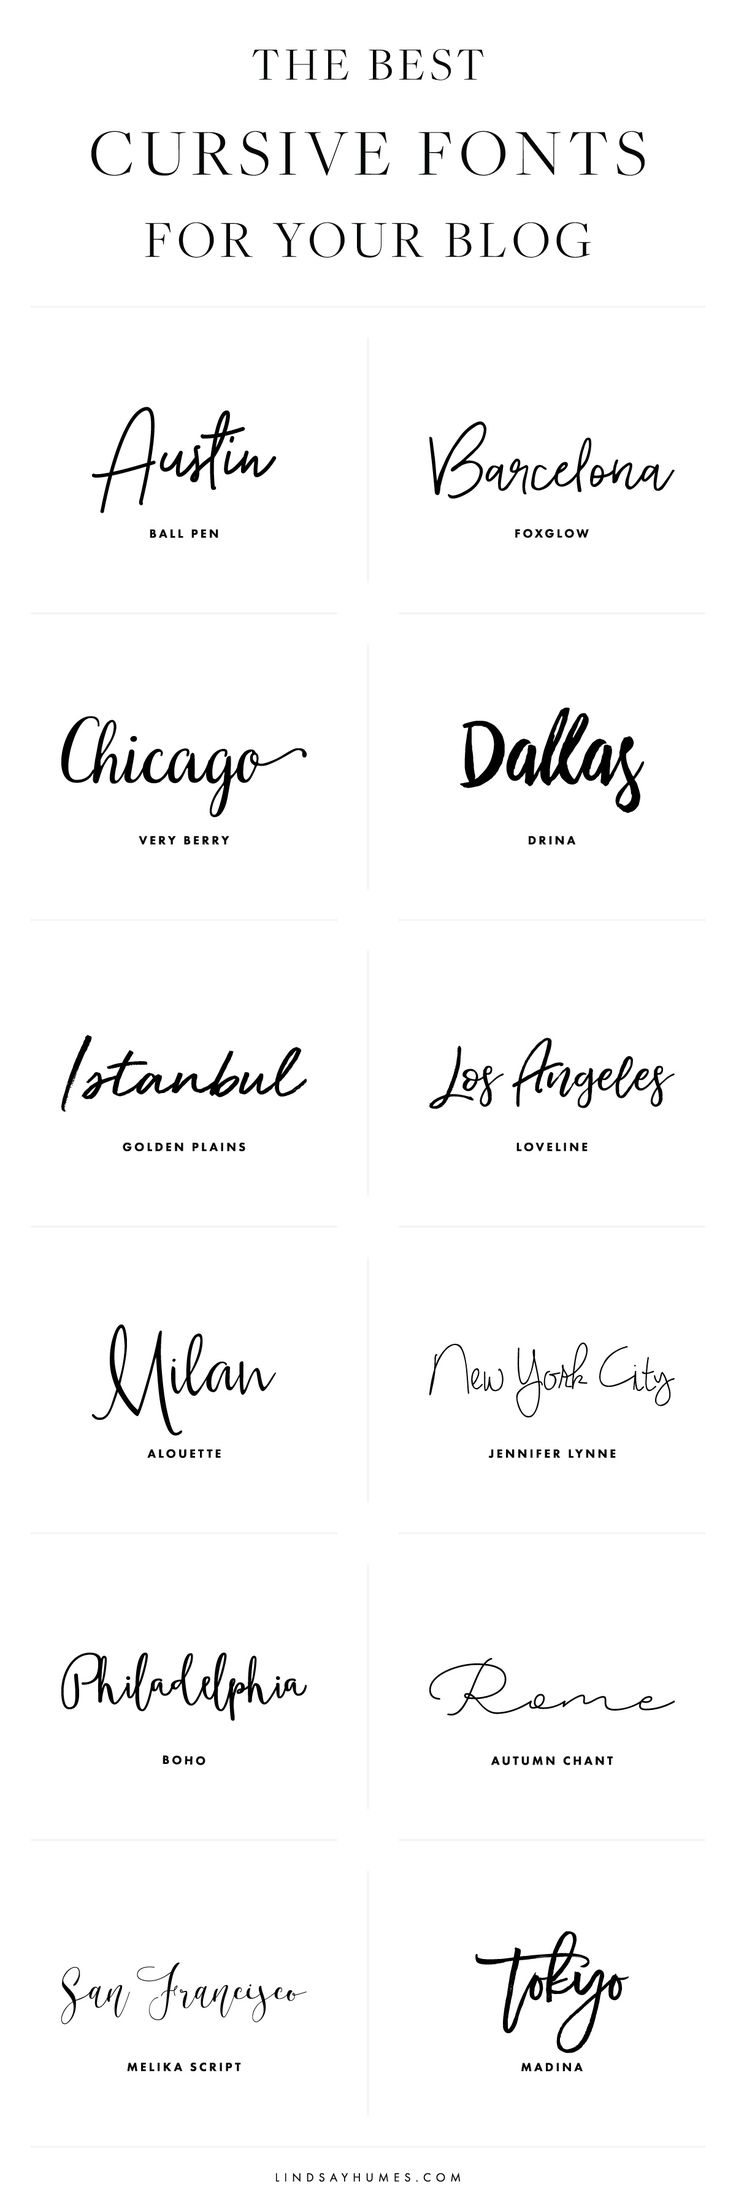 The Best Cursive Fonts for Your Blog Design